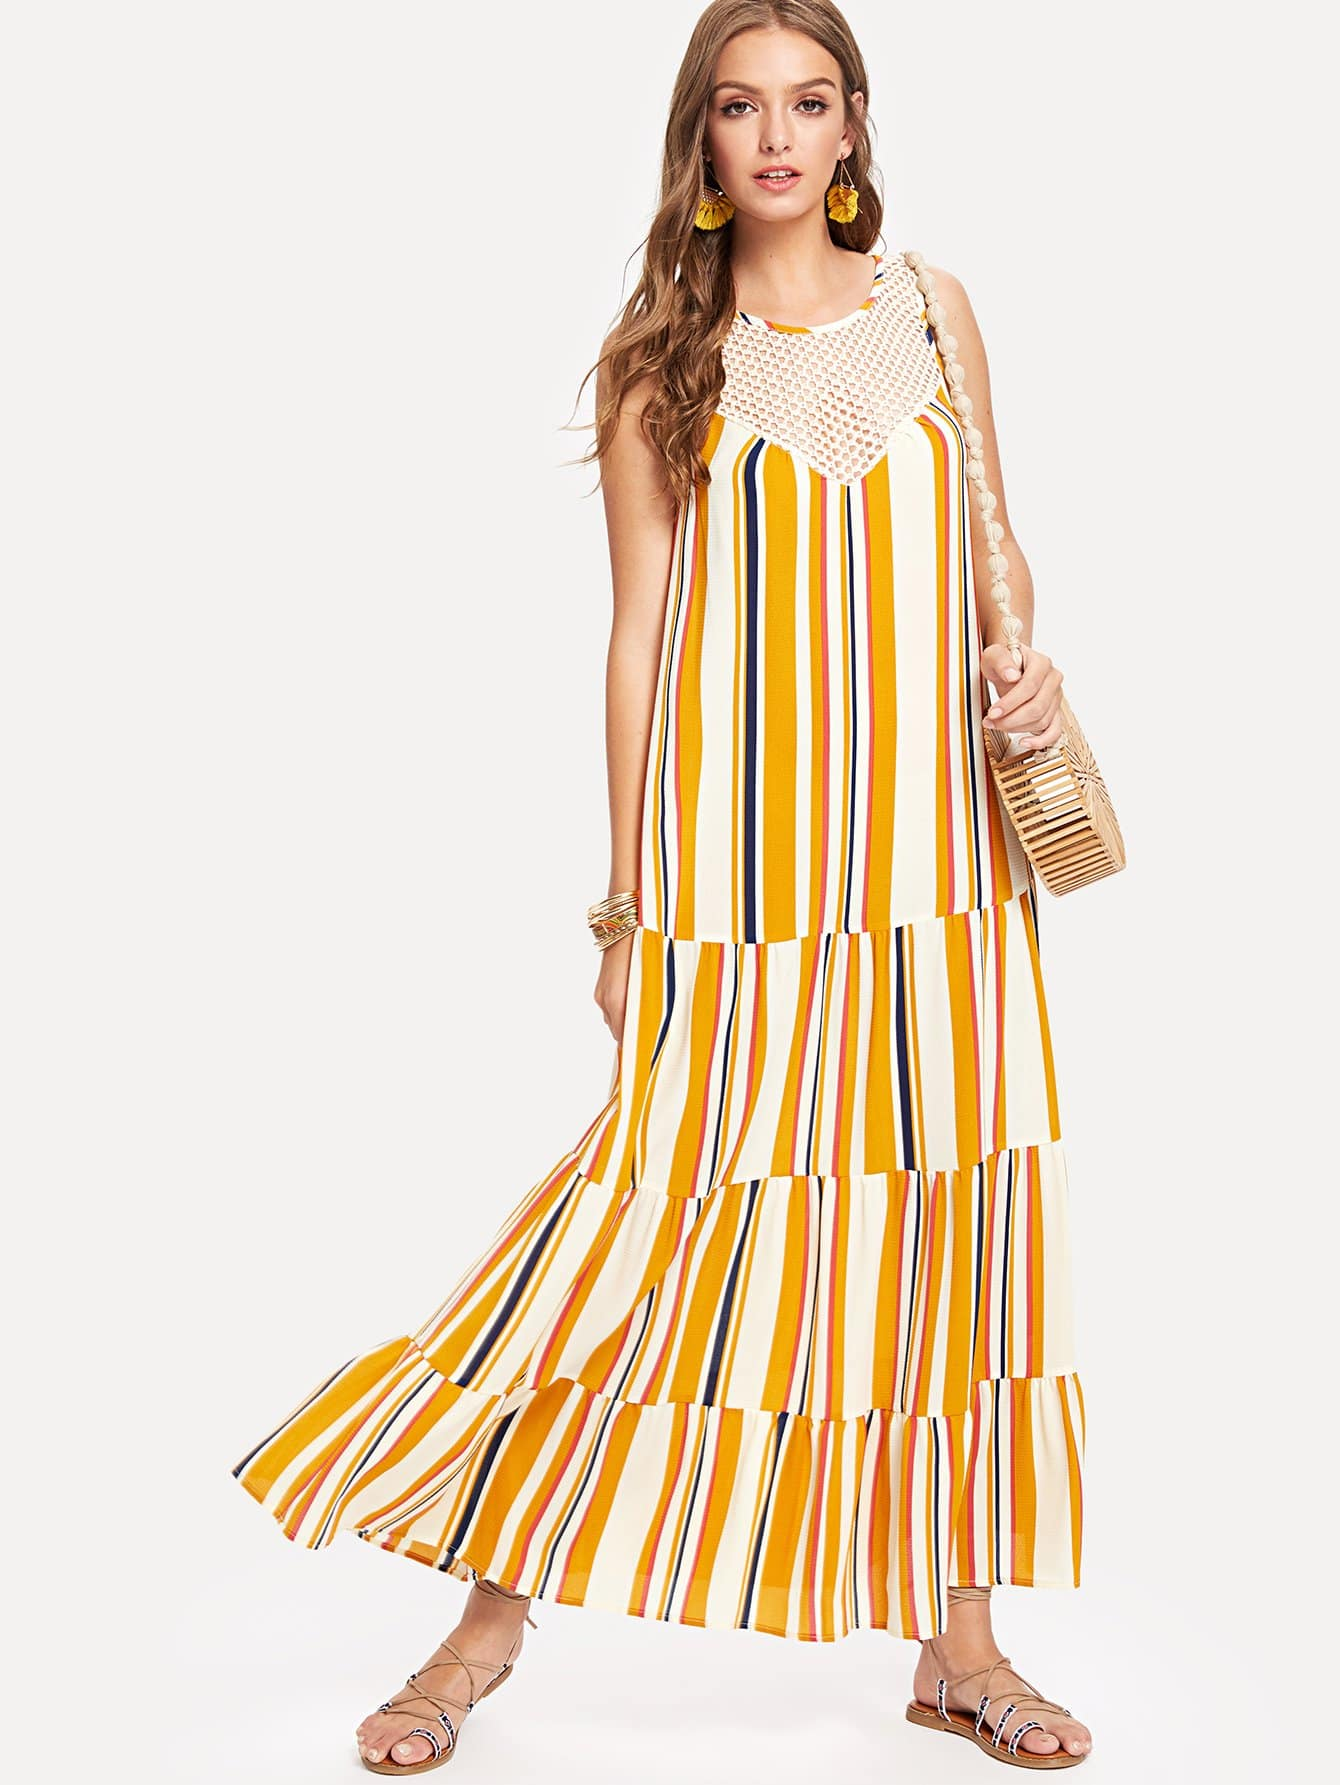 Lace Neck Tiered Striped Dress lace neck tiered striped dress